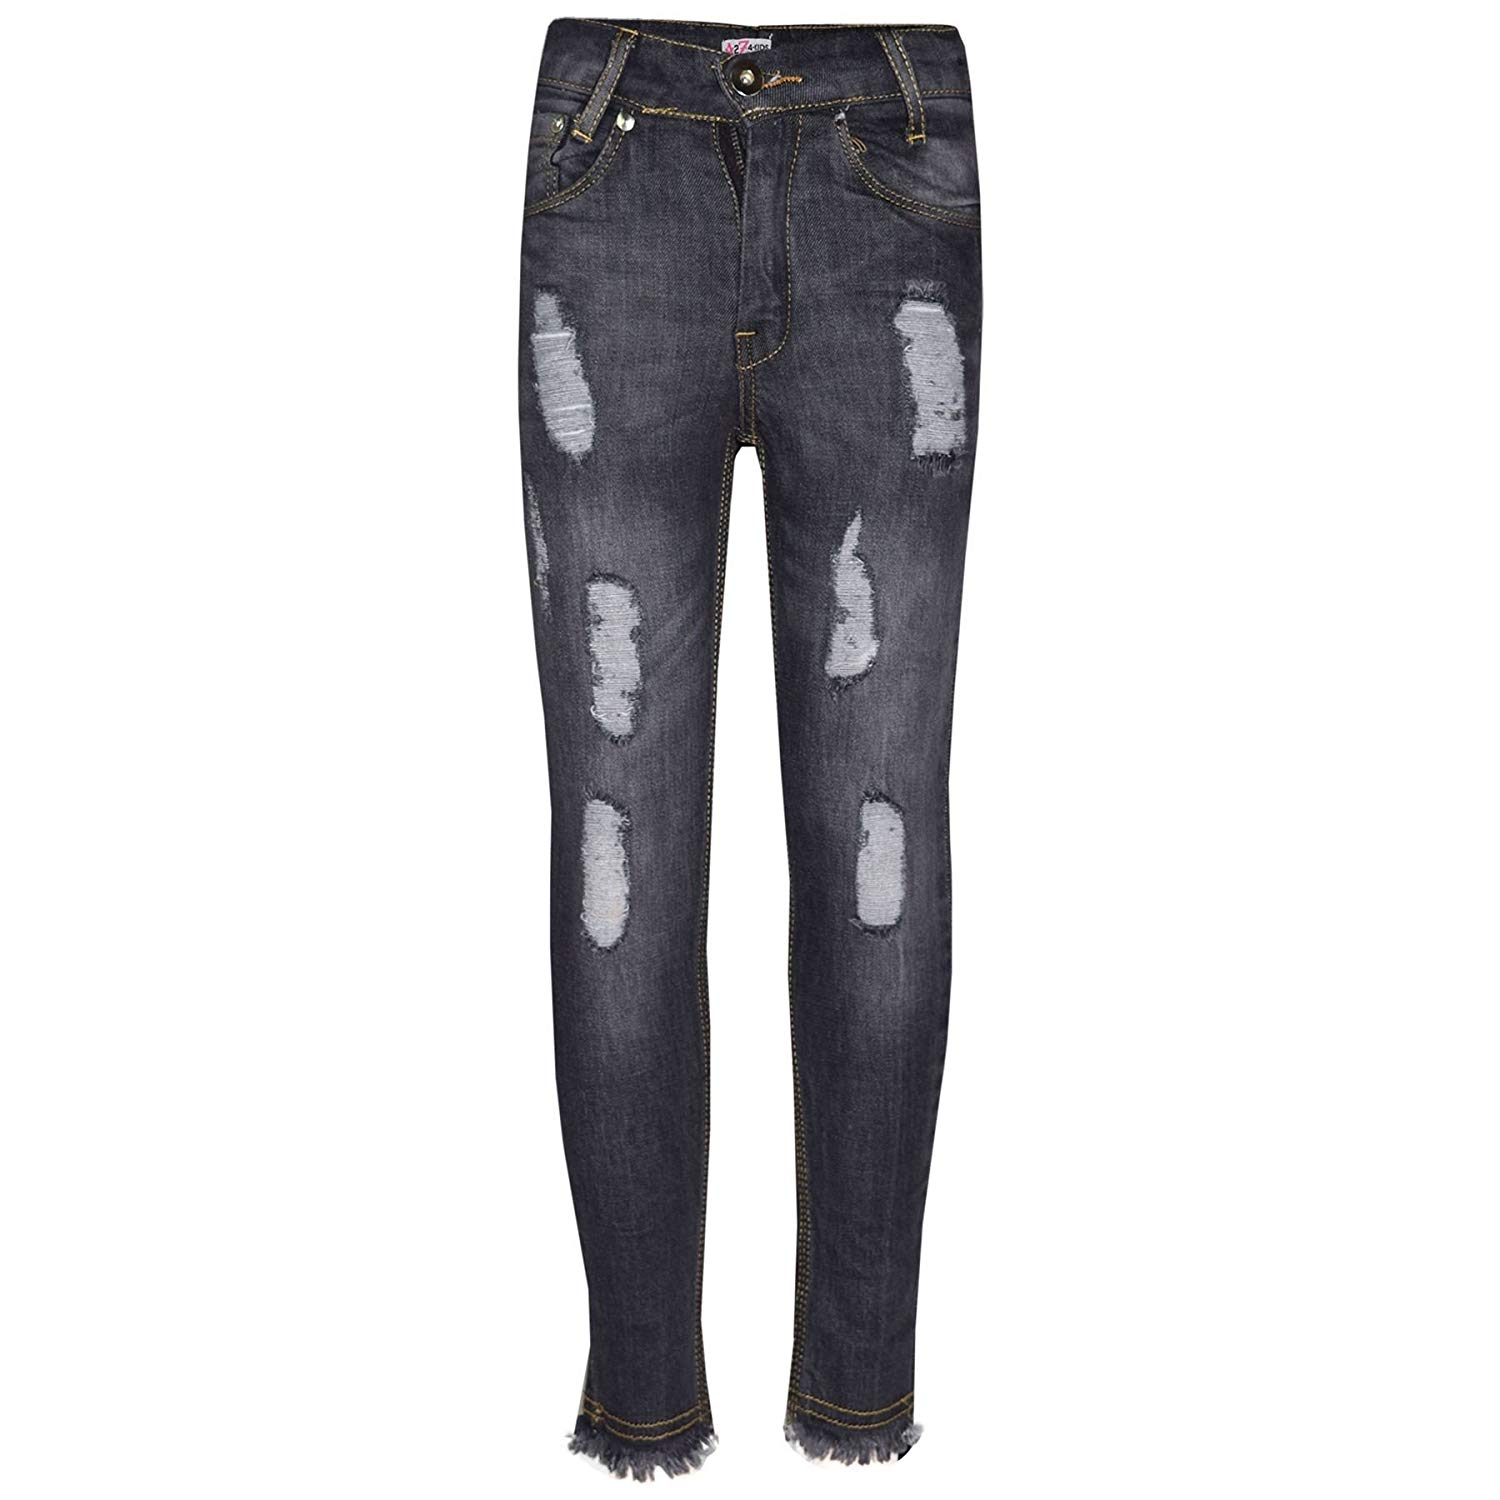 7ce5f70217b04 A2Z 4 Kids® Girls Skinny Jeans Kids Stretchy Denim Ripped Rough Pants  Trousers Jeggings 5